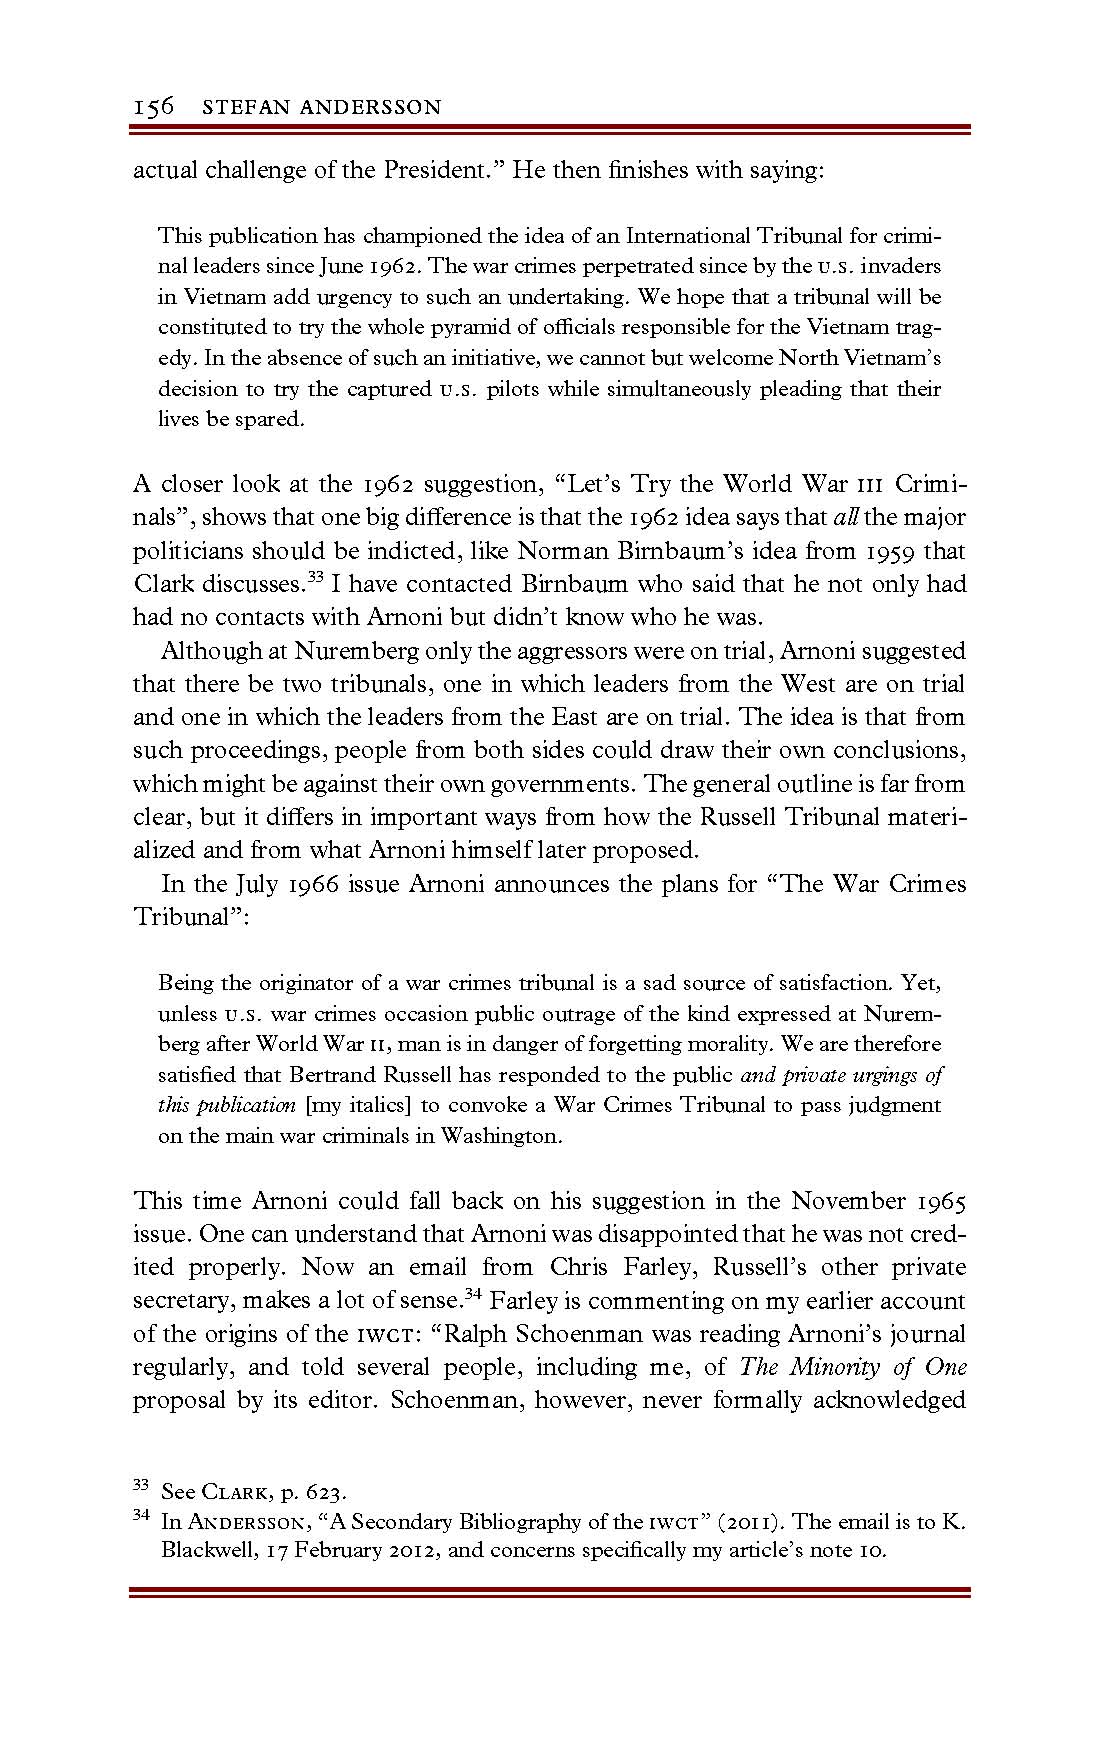 Anderson-- Pages from RJ 3402 050 red-5 (2)-1_Page_22